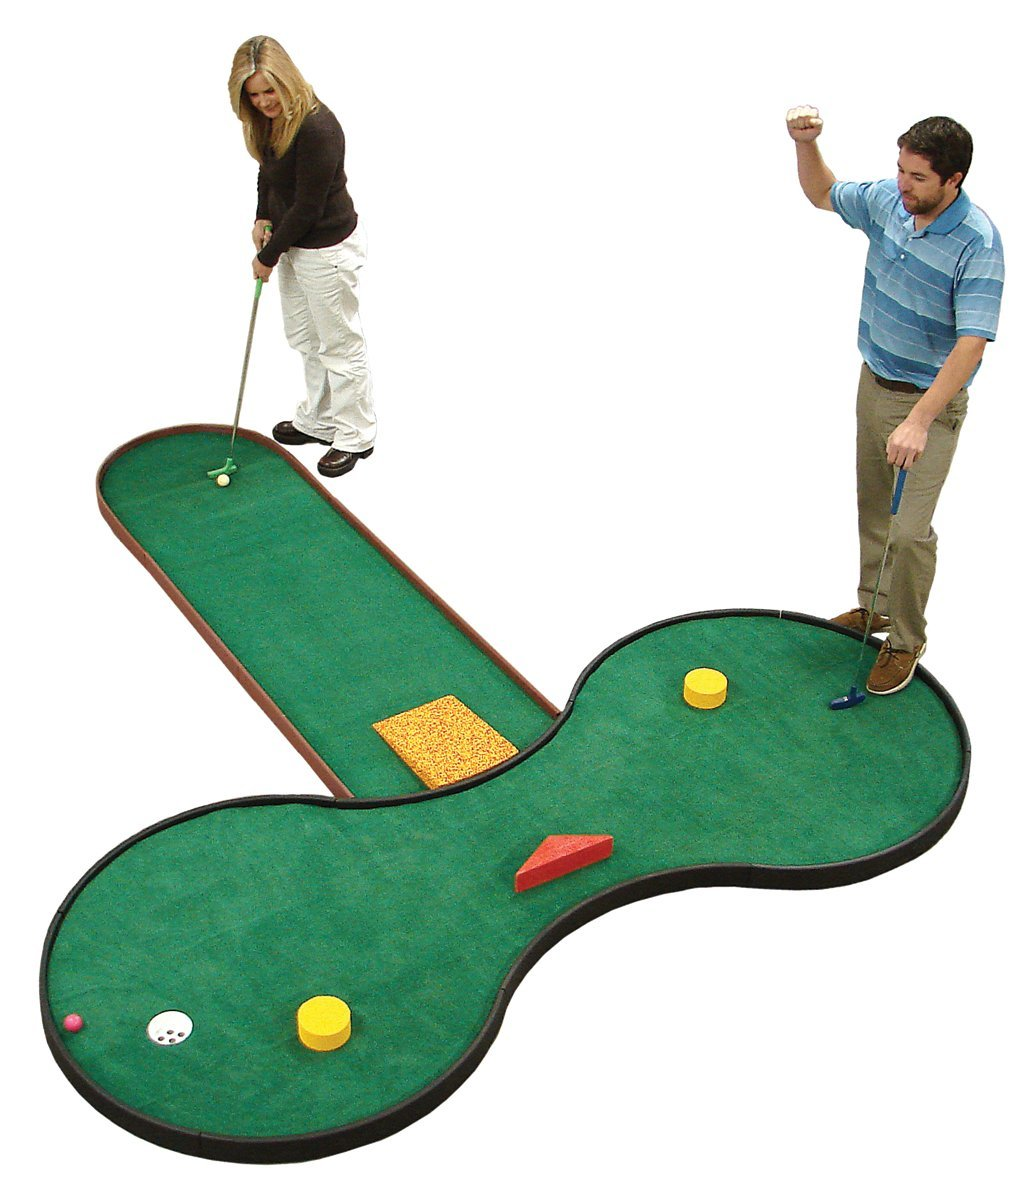 SplitShot Mini Golf: A New, Fun Modular Design Driven by Customer Need